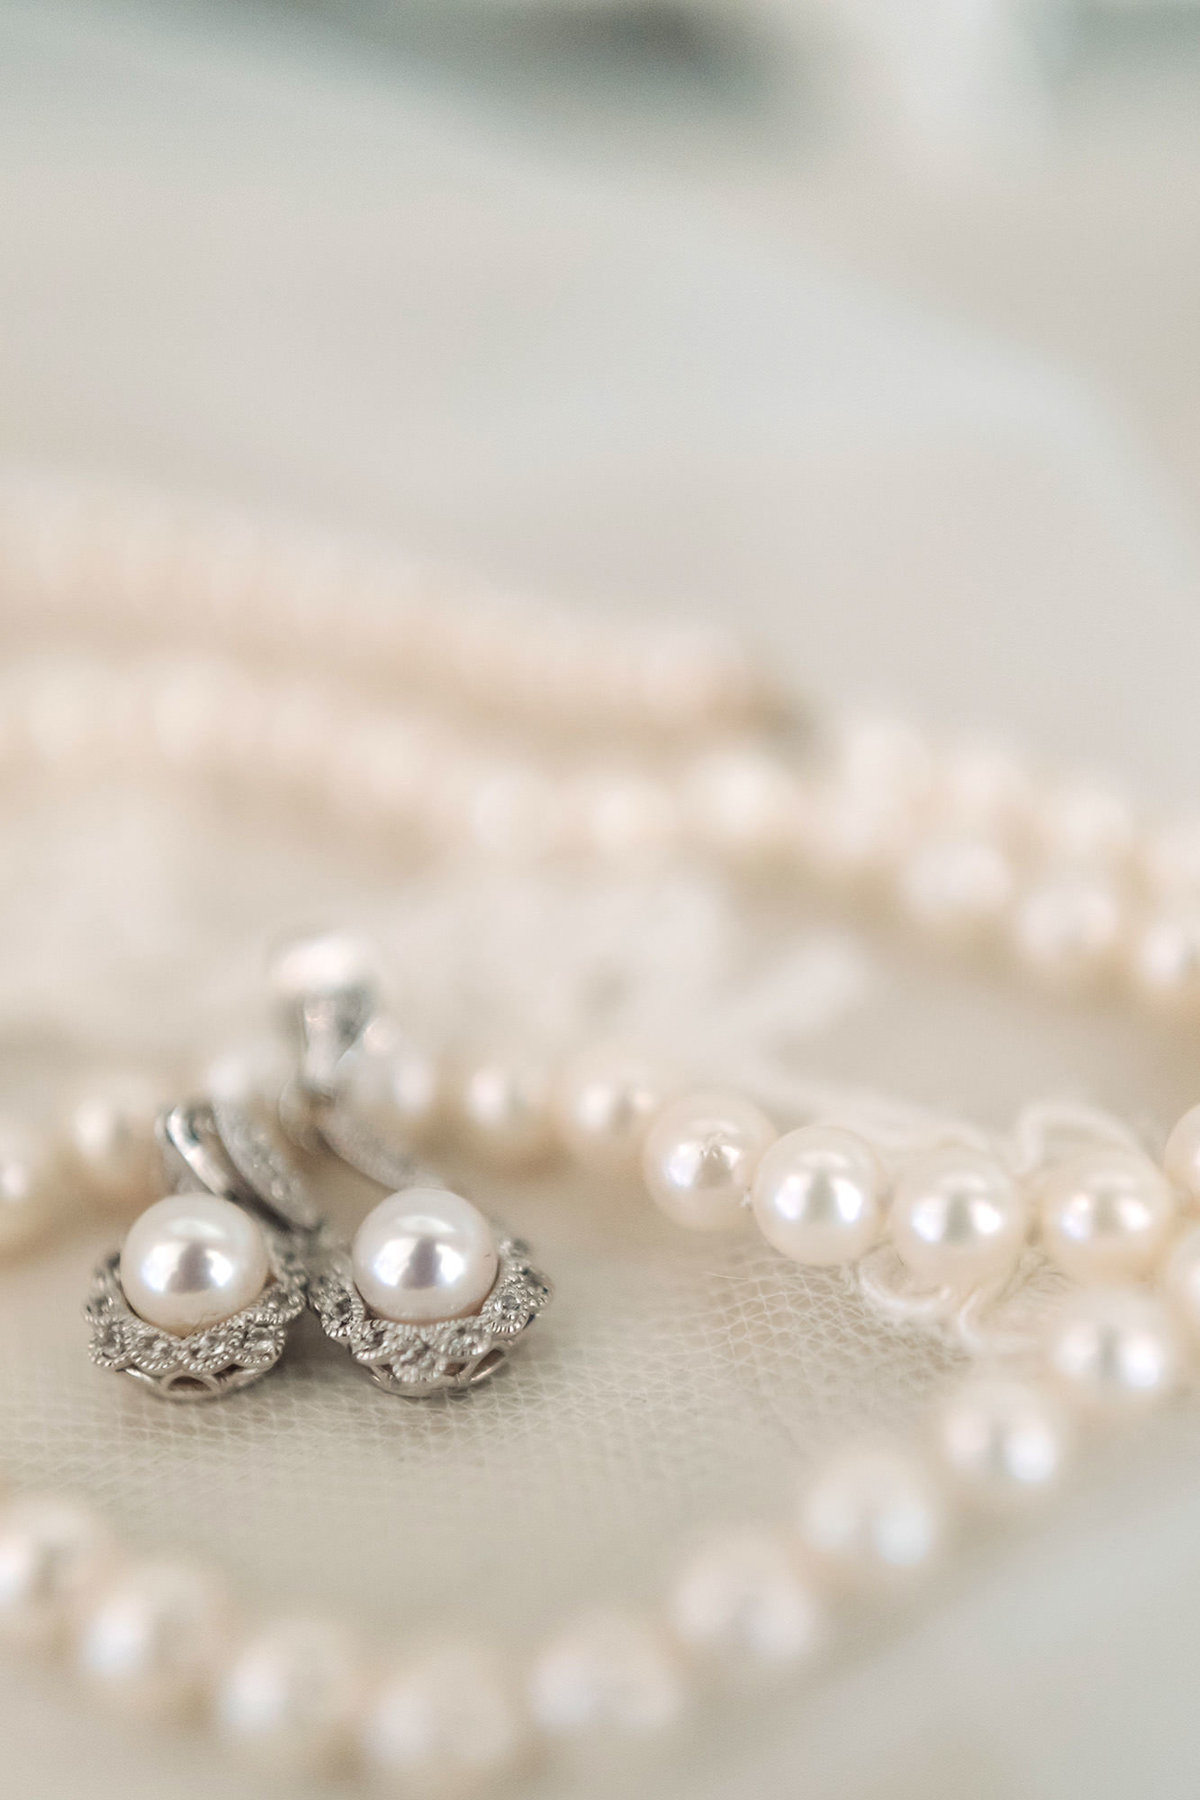 pearl wedding jewelry earrings necklace bridal details